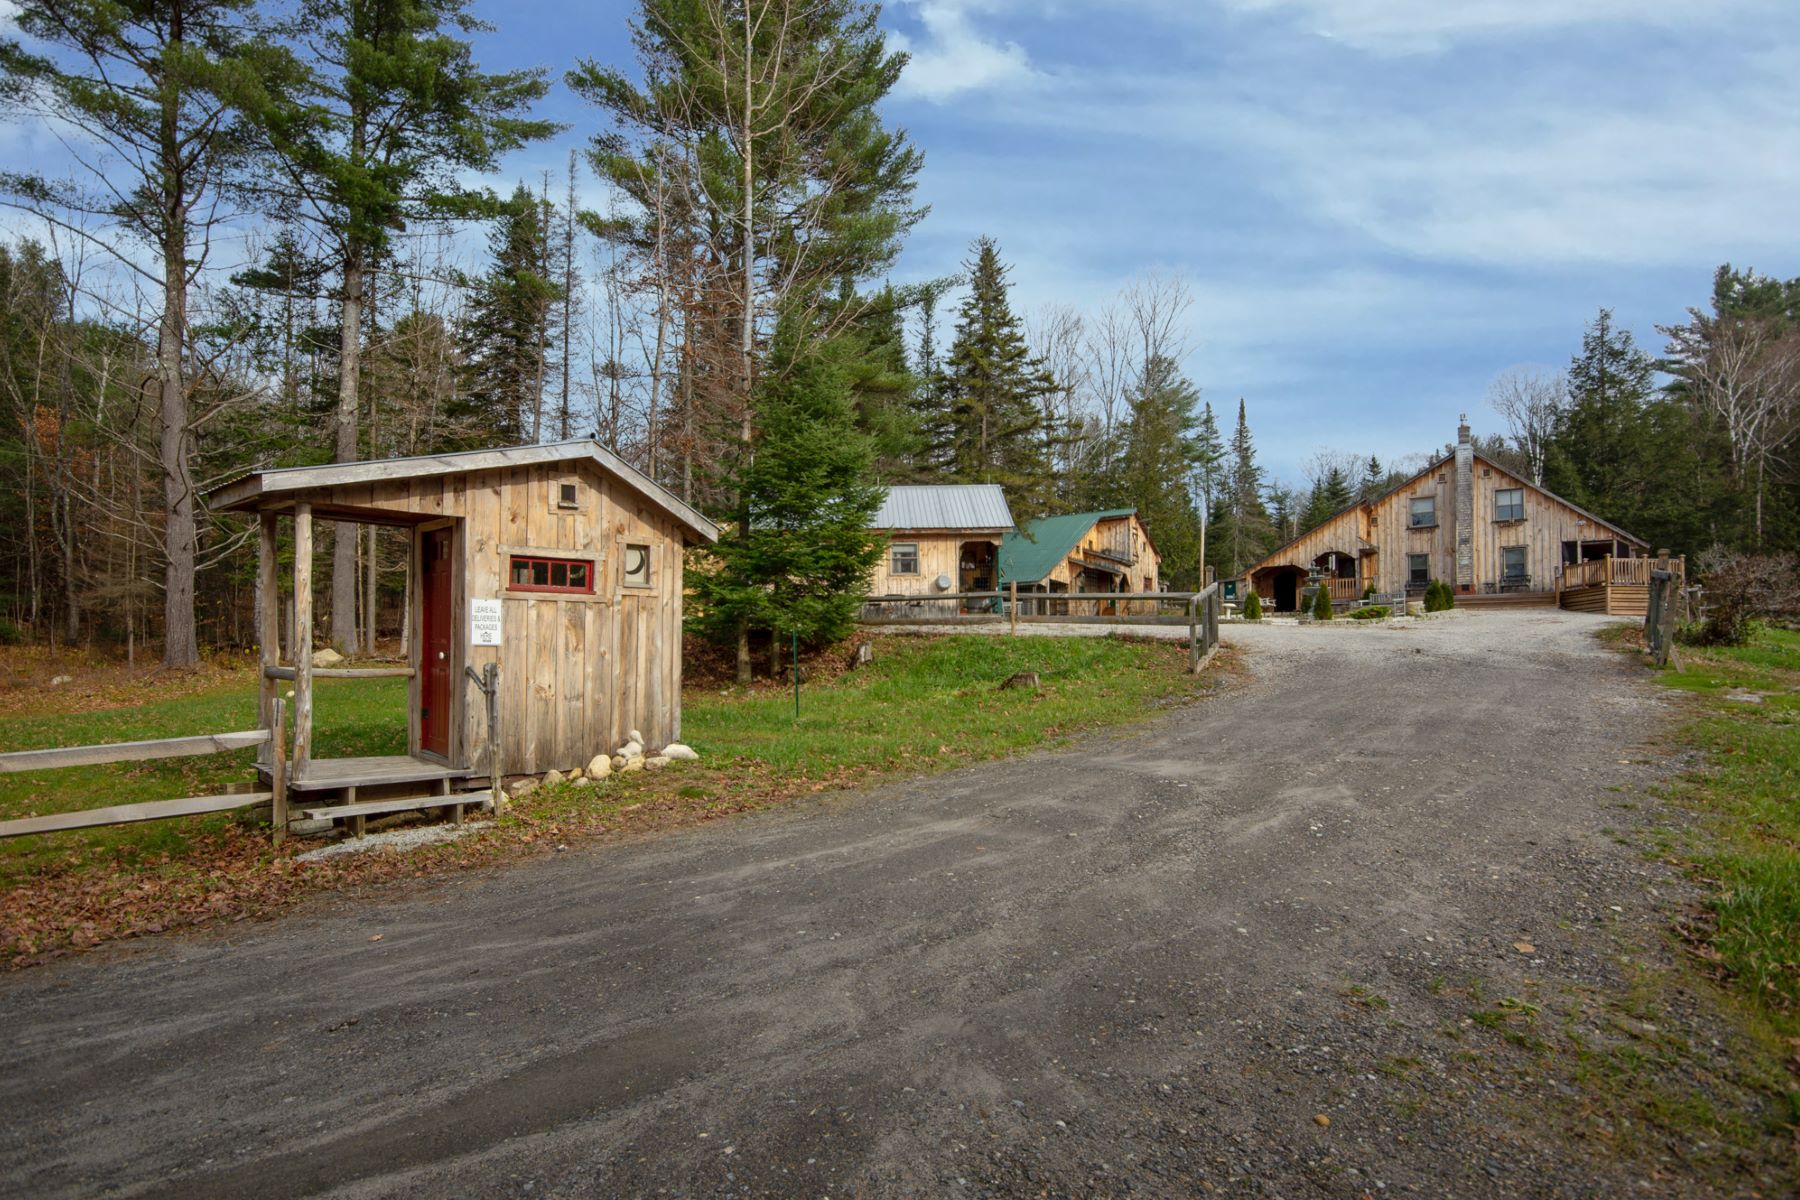 Single Family Home for Sale at 1847 Scales Hill Road, Washington 1847 Scales Hill Rd Washington, Vermont 05675 United States